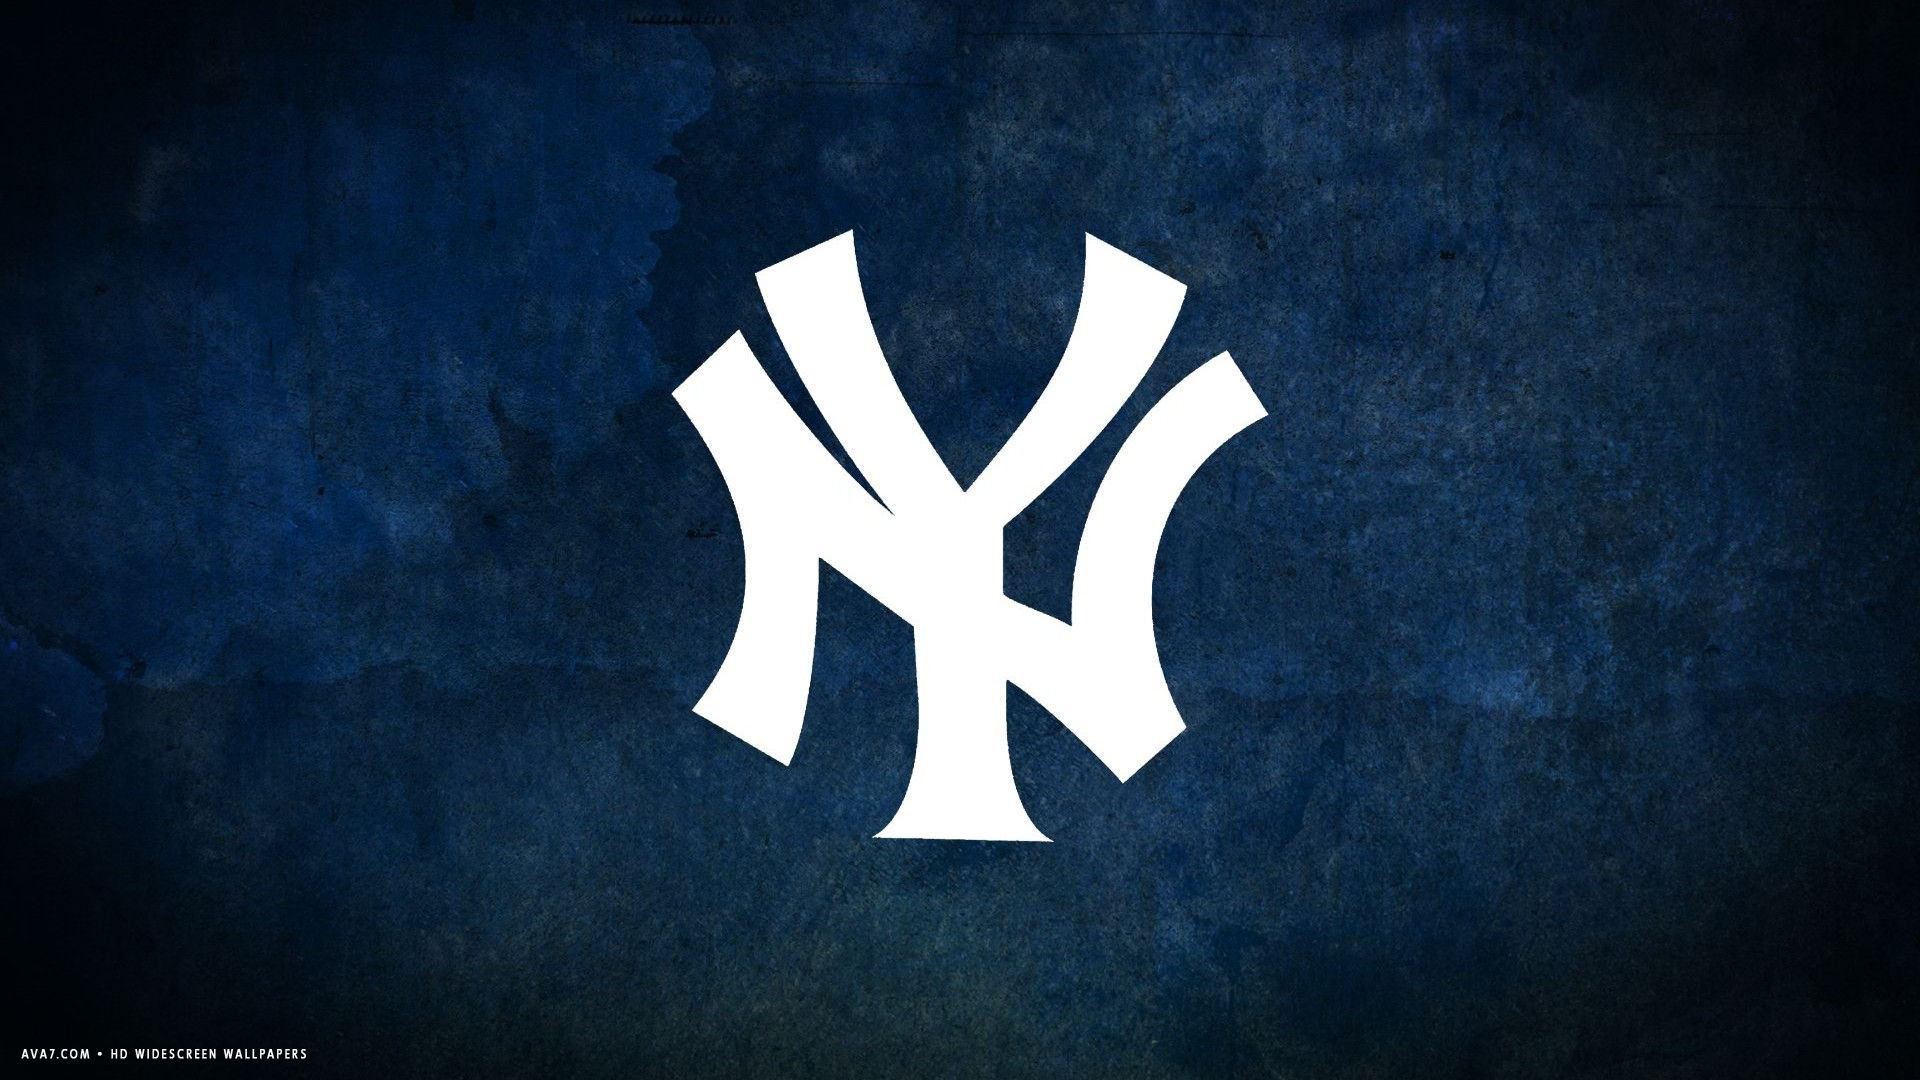 new york yankees mlb baseball team hd widescreen wallpaper